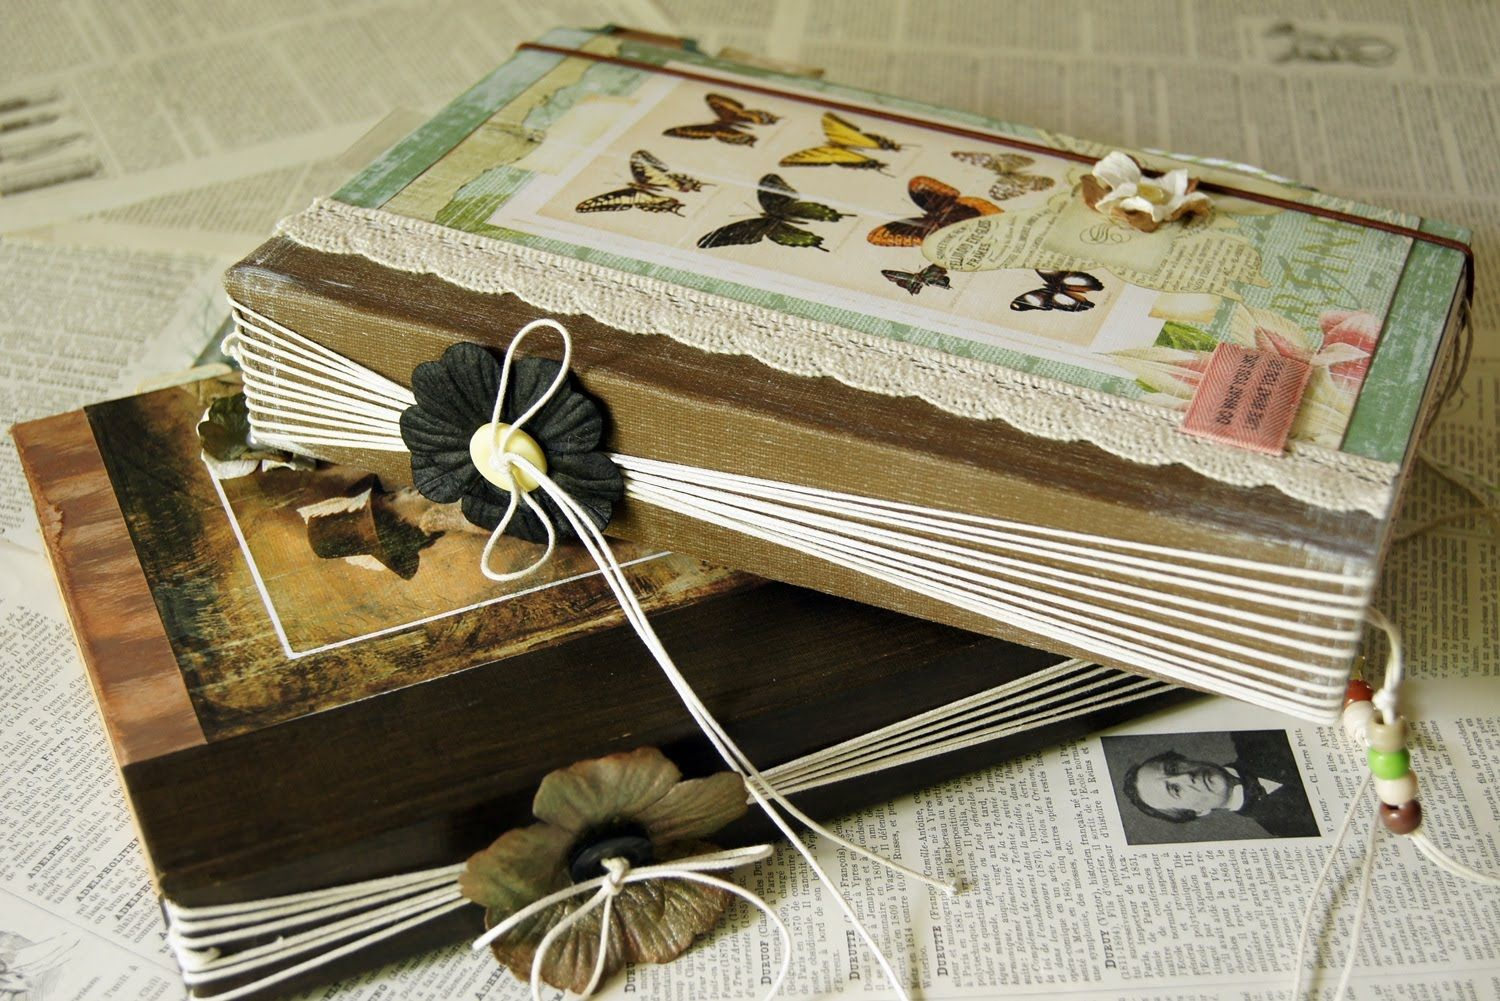 Easy Twine Binding Junk Journal Great Tutorial Easy To Understand Using Old Book Cover Your Own Pages Vintage Junk Journal Handmade Journals Diy Journal